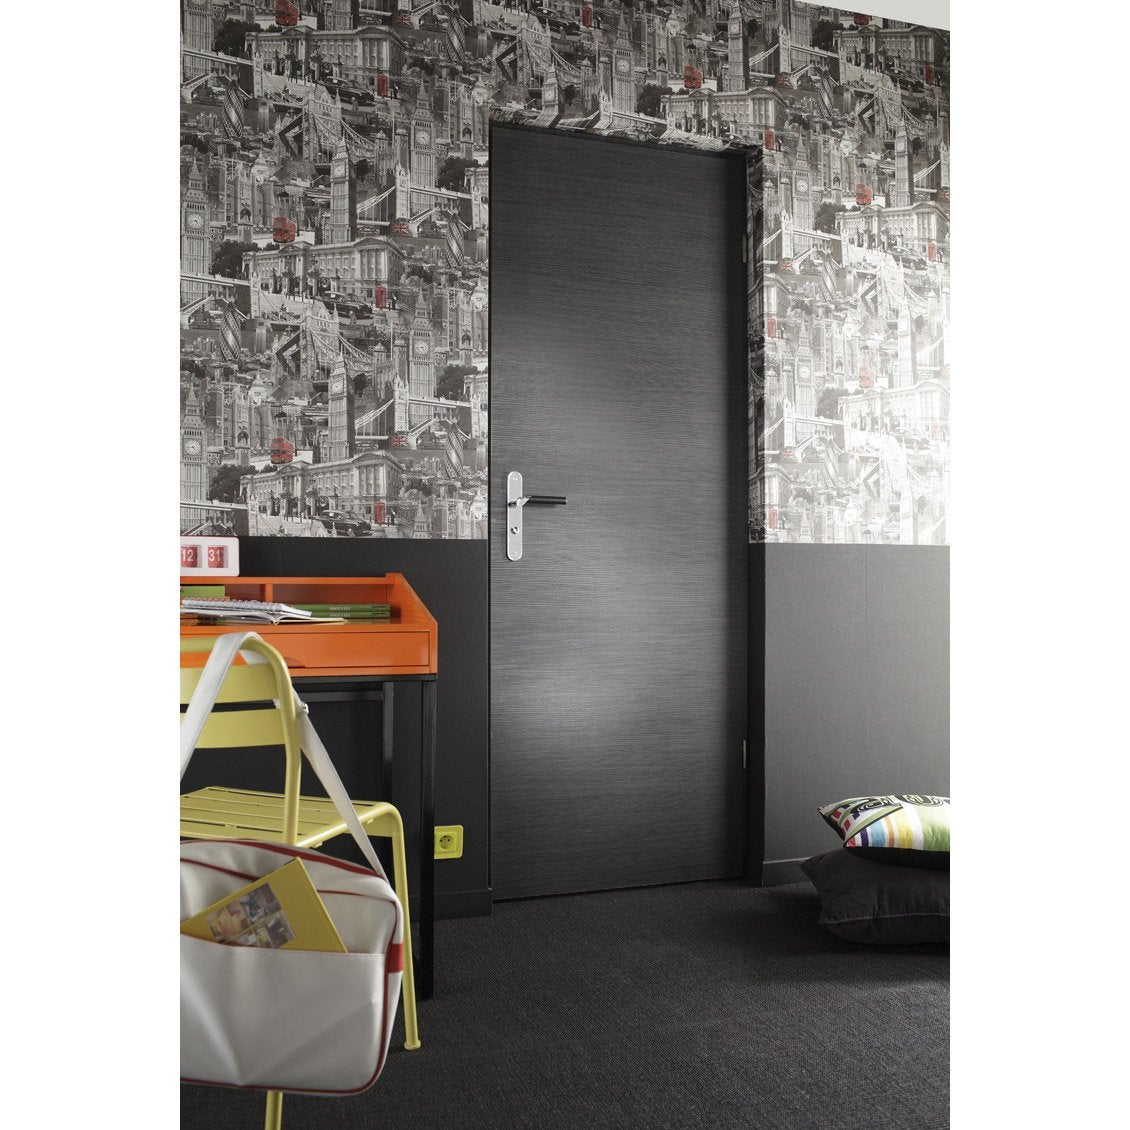 porte fin de chantier londres rev tu d cor ch ne gris 204x93 cm poussant droit leroy merlin. Black Bedroom Furniture Sets. Home Design Ideas